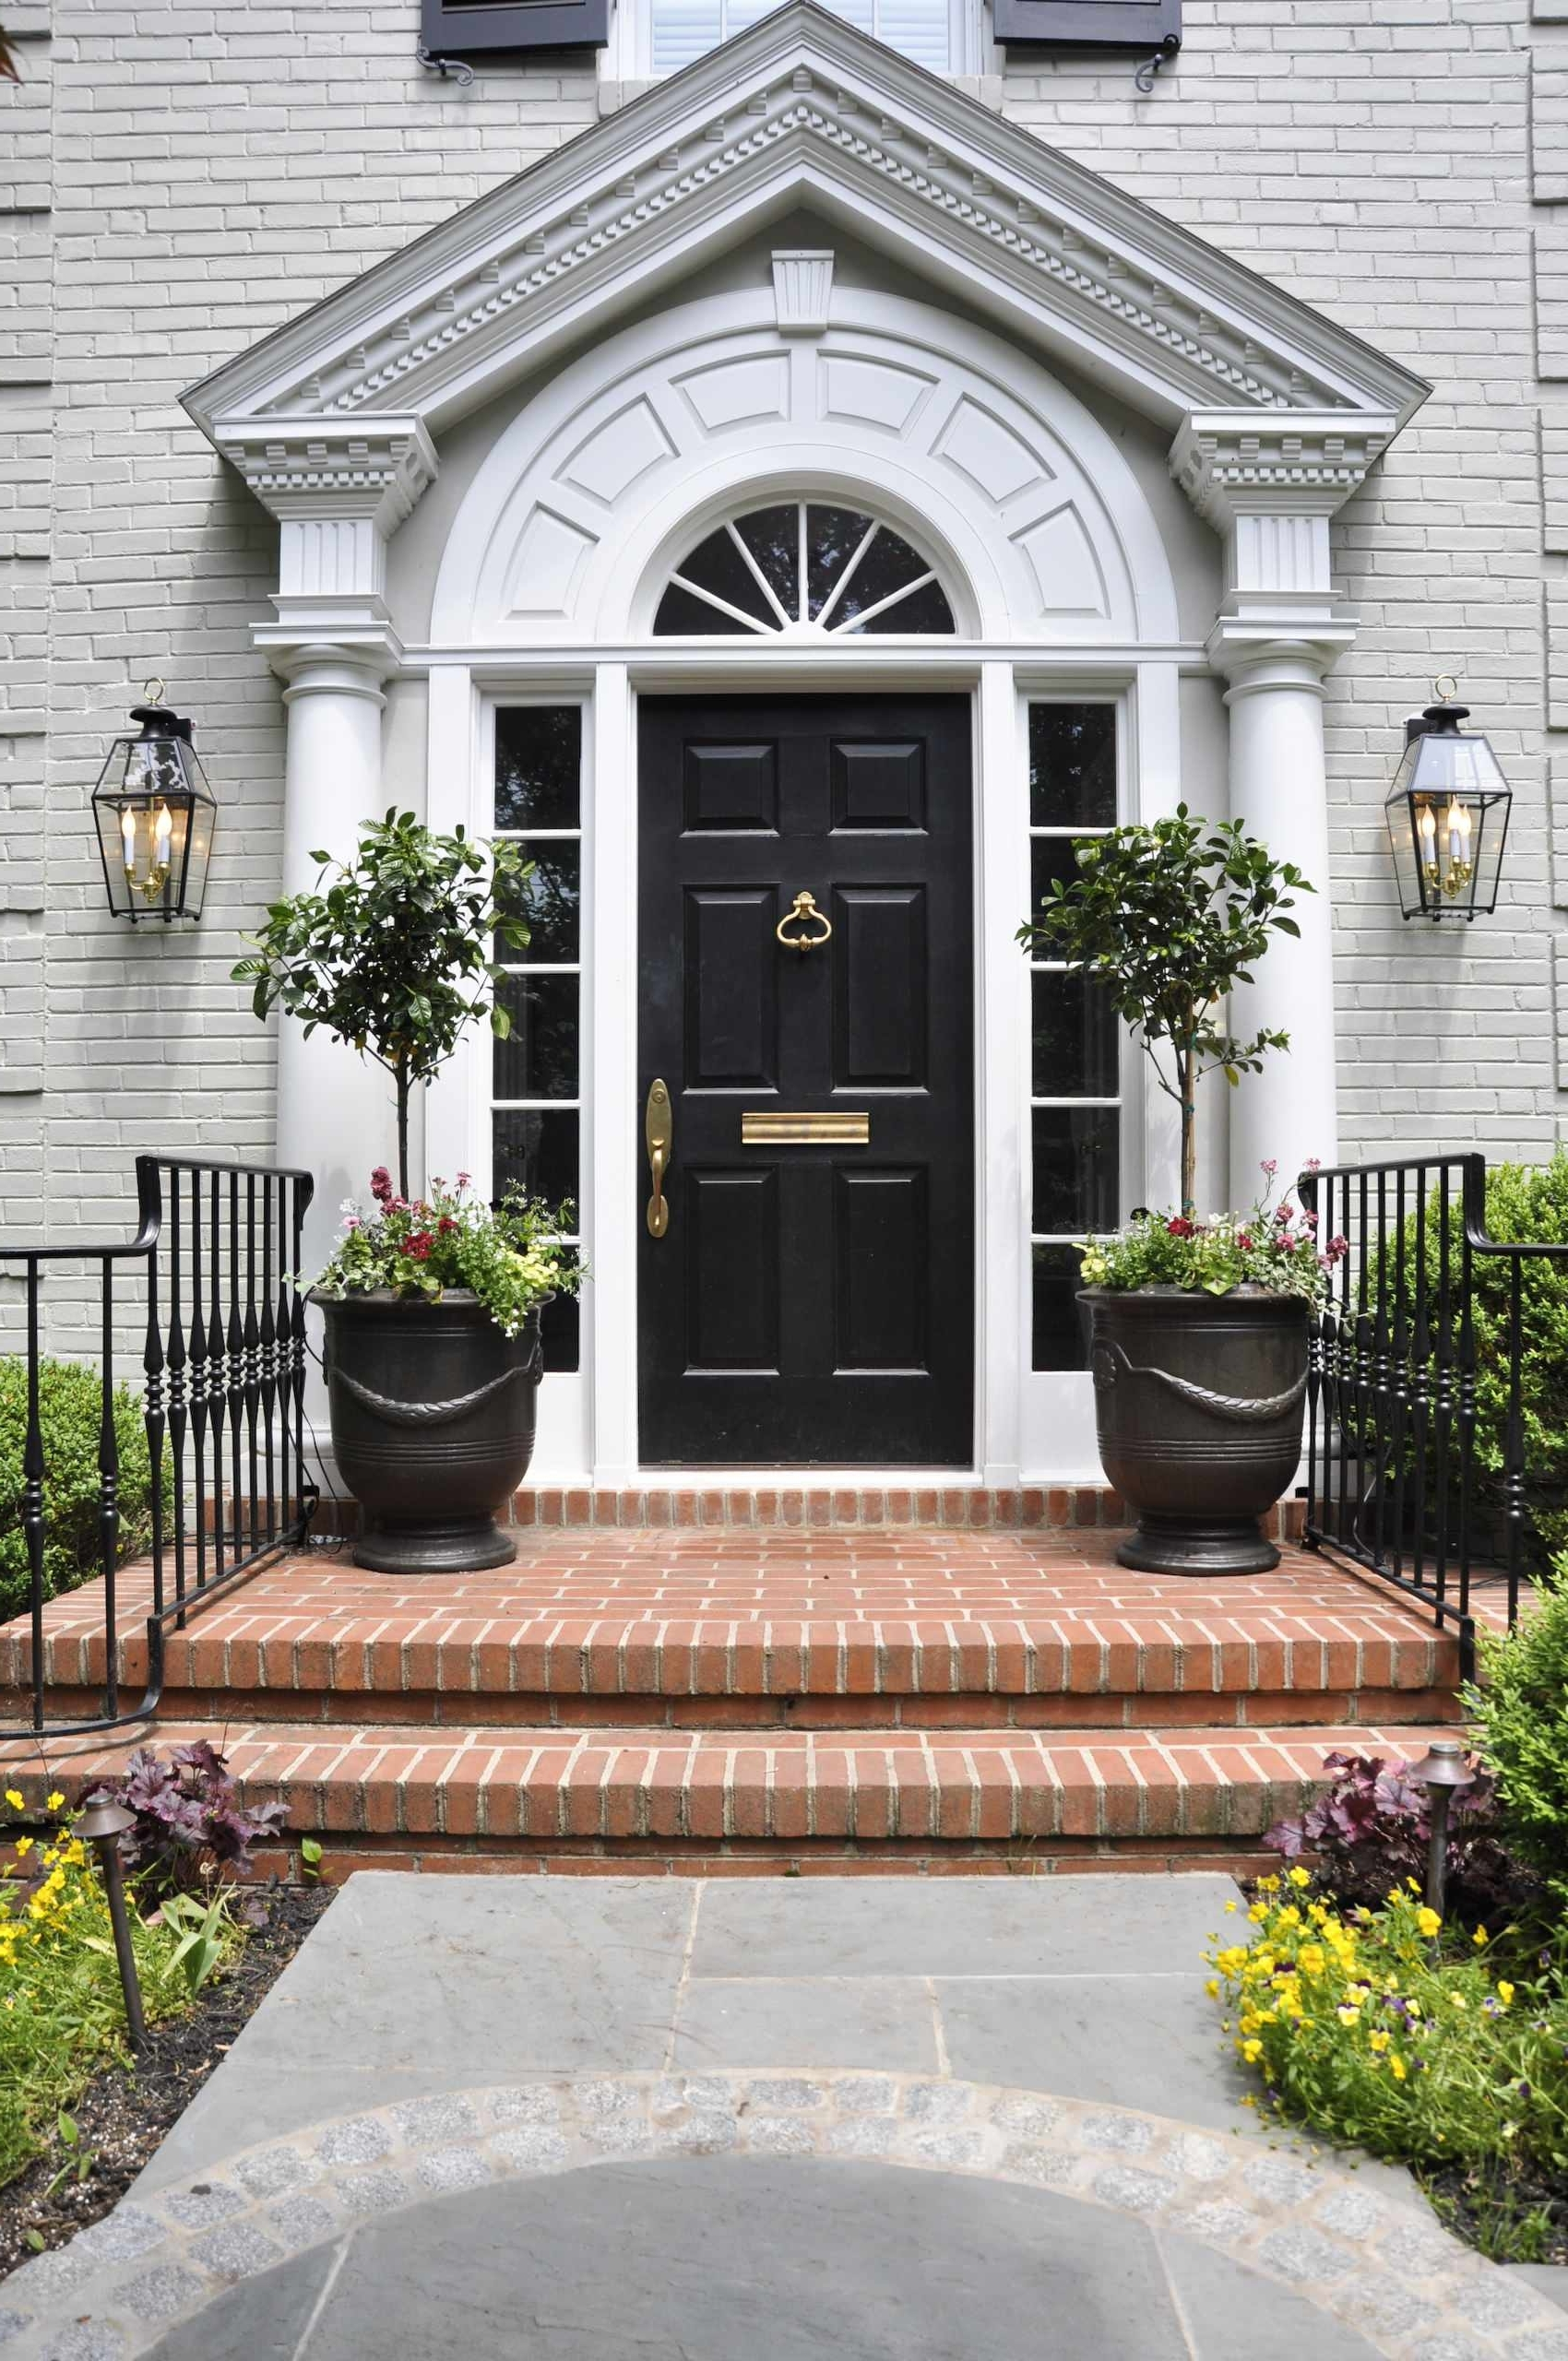 Outdoor Entrance Lanterns Throughout Most Popular Exterior Design: Decorating With Lanterns And Entrance Pots Also (View 10 of 20)